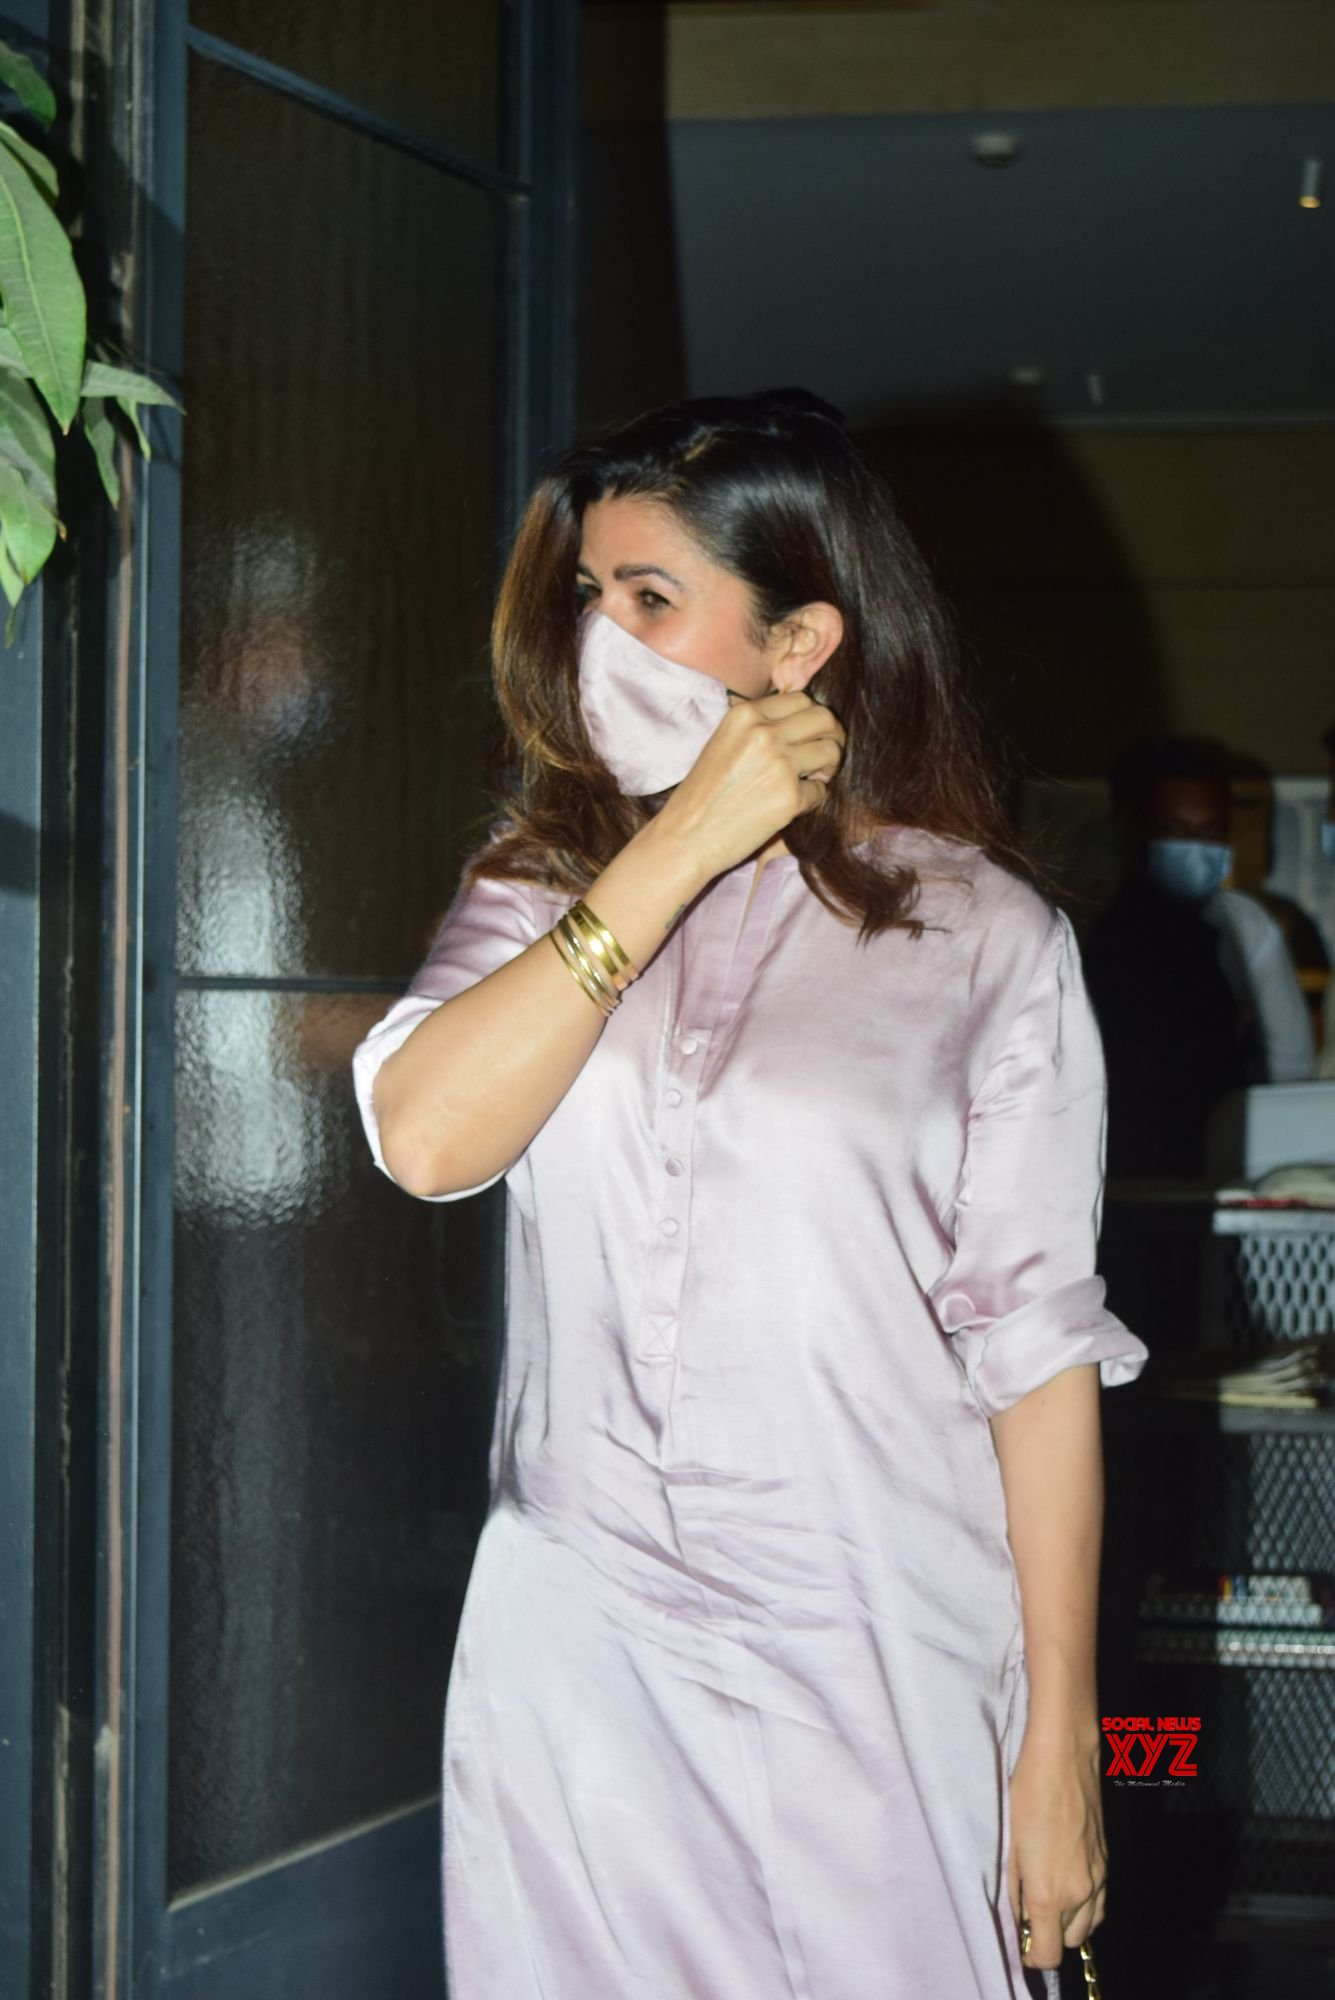 Actress Nimrat Kaur Spotted Pali Village Cafe In Bandra - Gallery